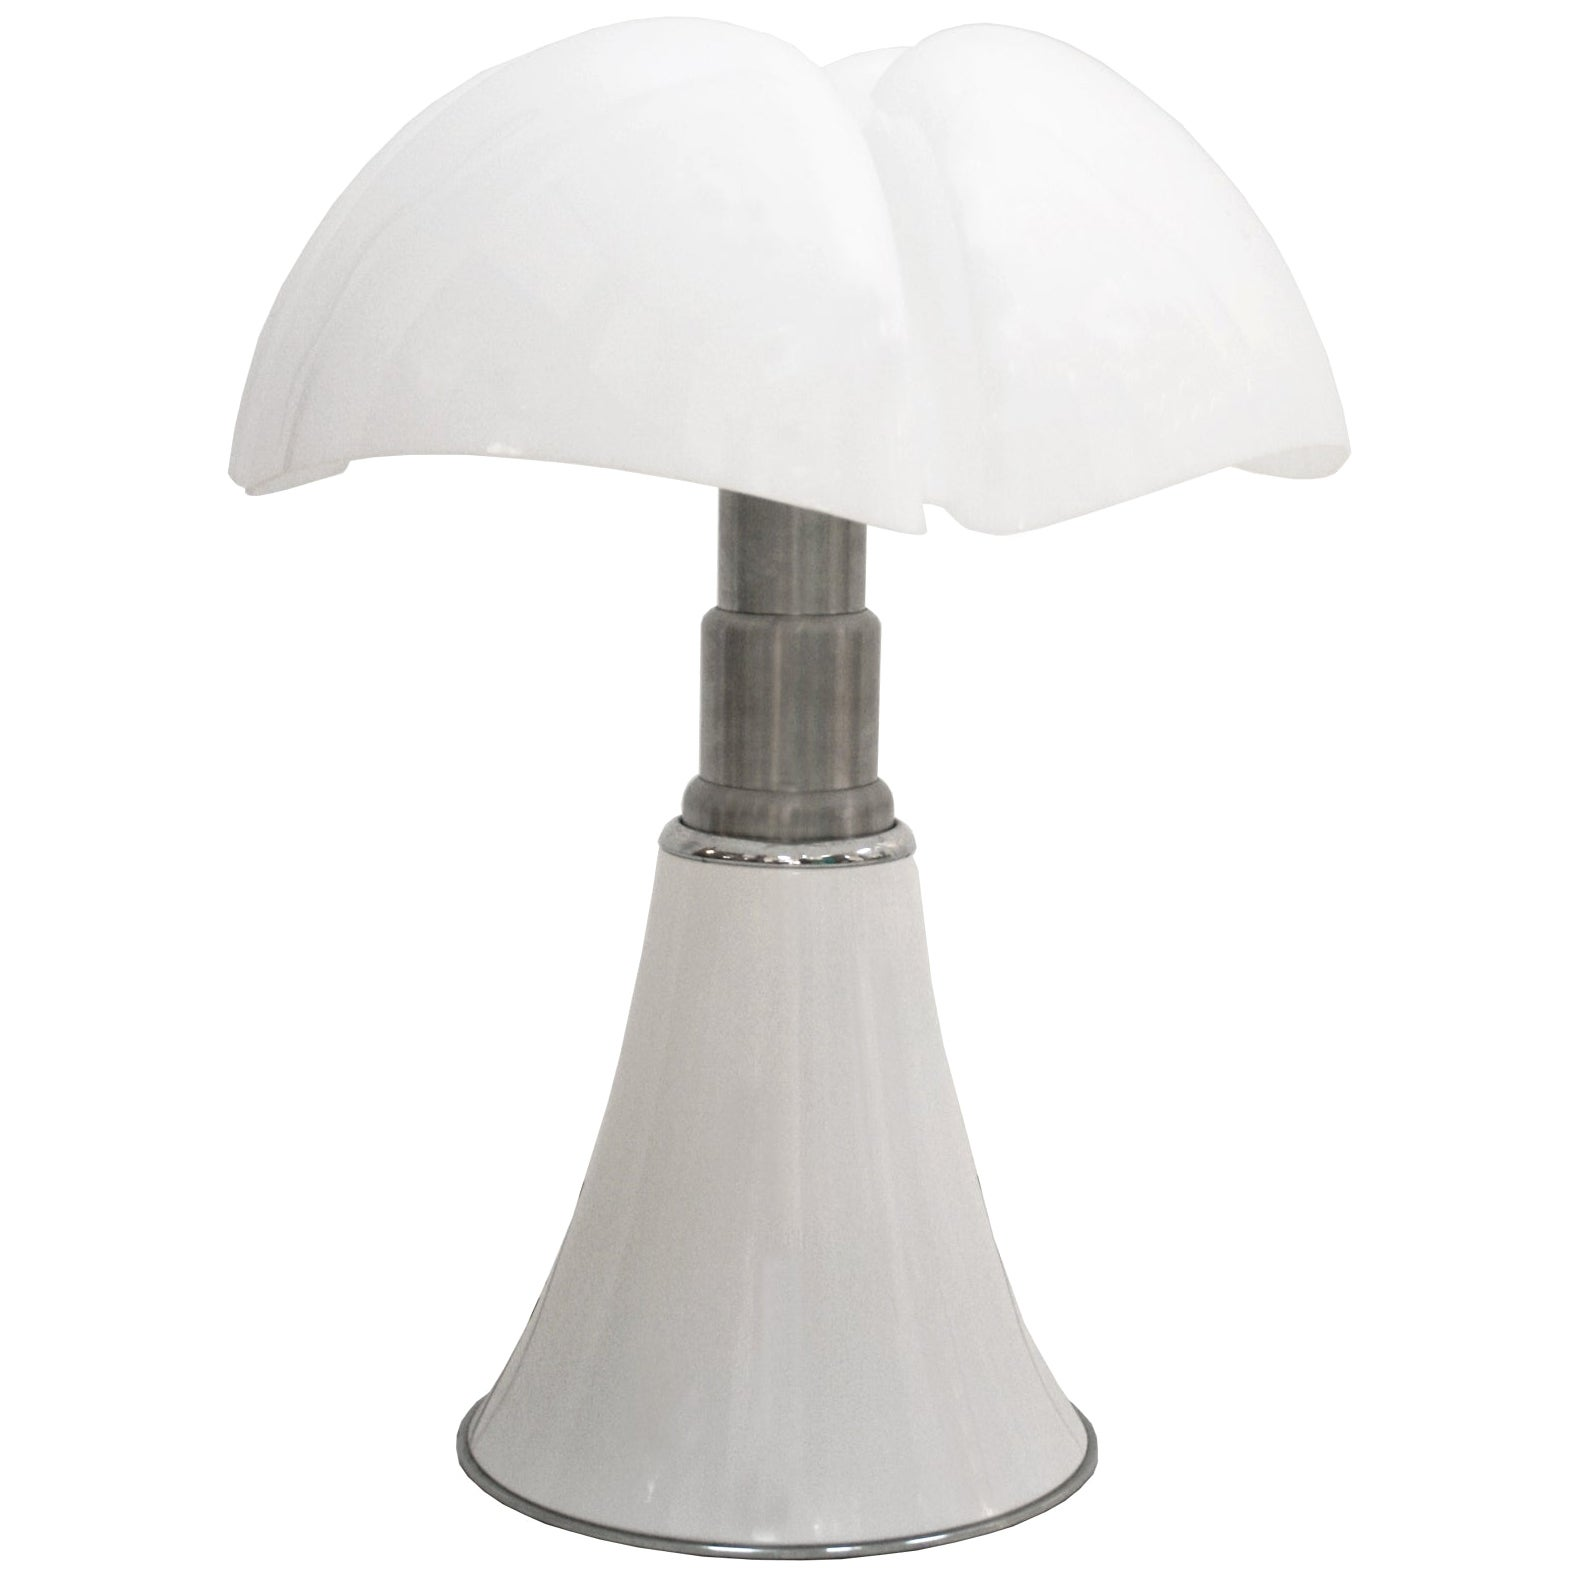 "Mid-Century Modern ""Pipistrello"" Table Lamp Designed by Gae Aulenti, Italy, 1980"